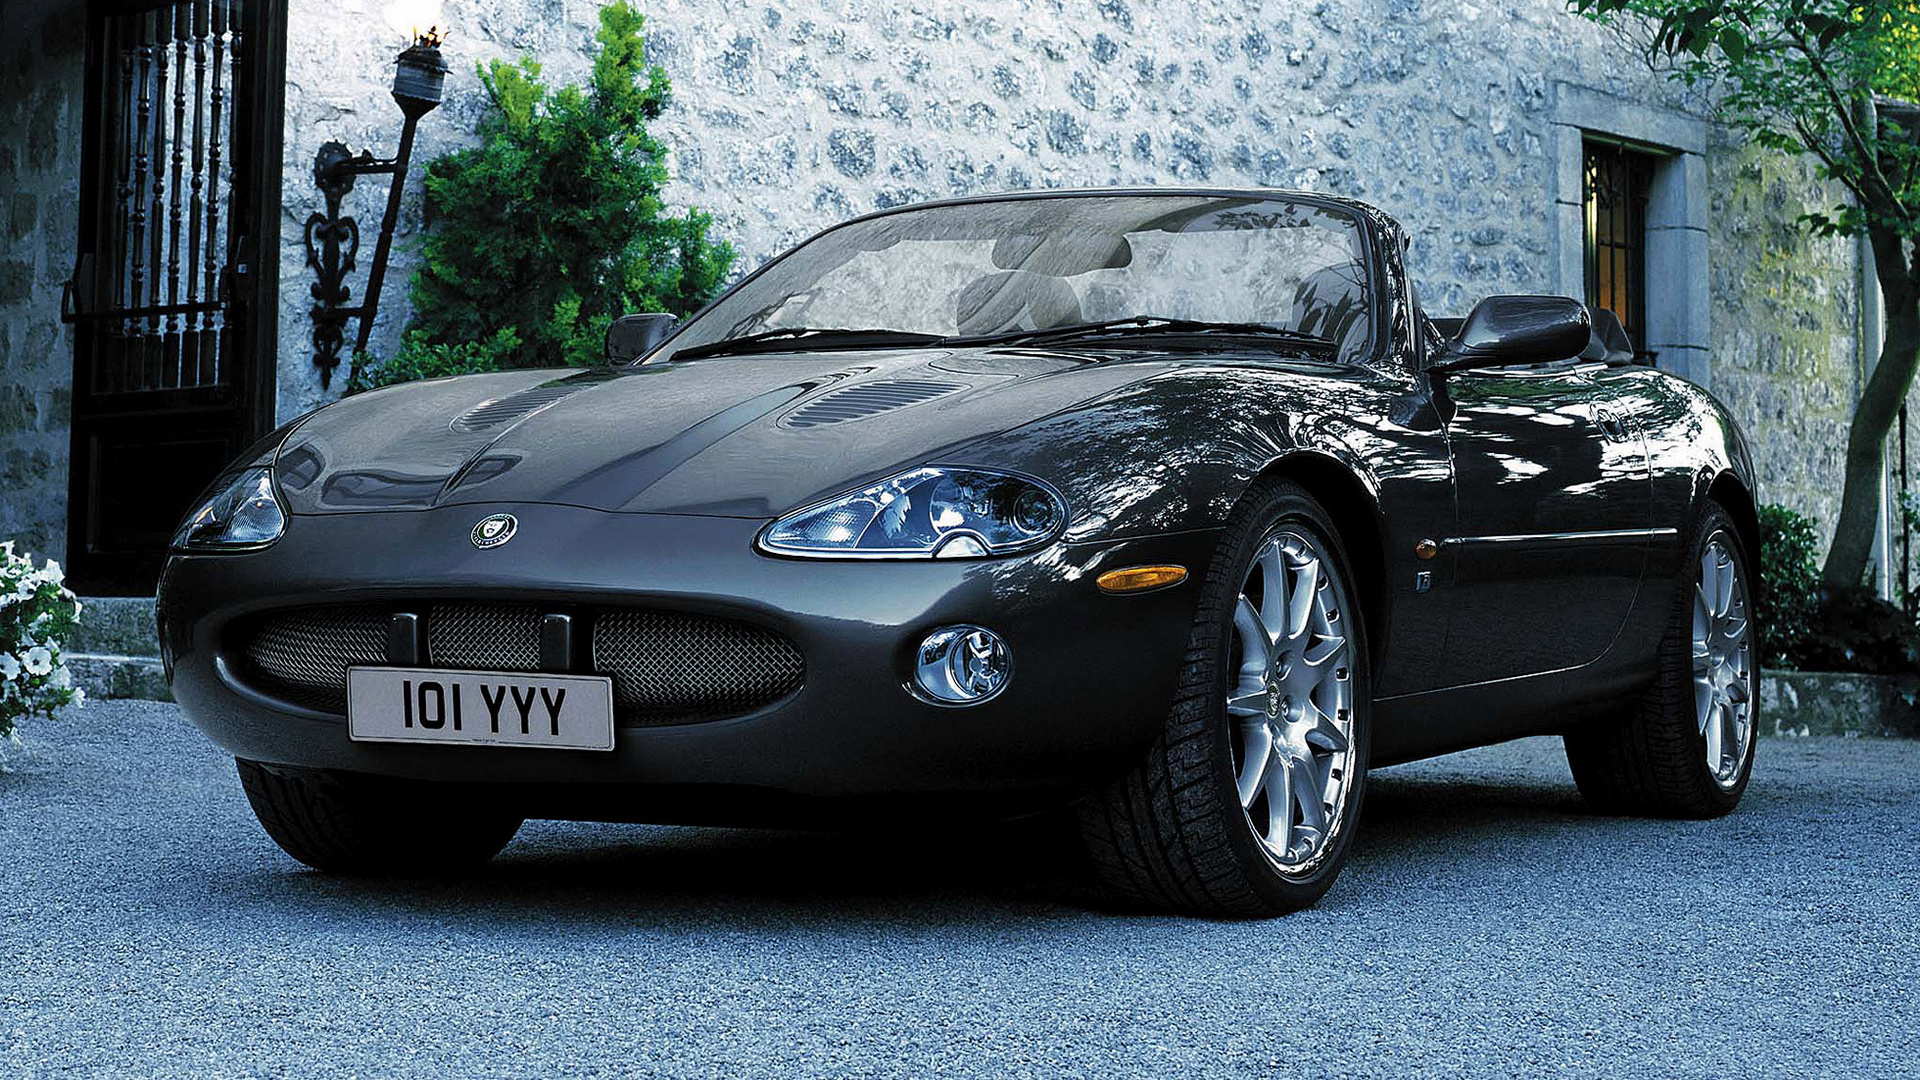 2003 Jaguar Xkr Convertible Wallpapers And Hd Images